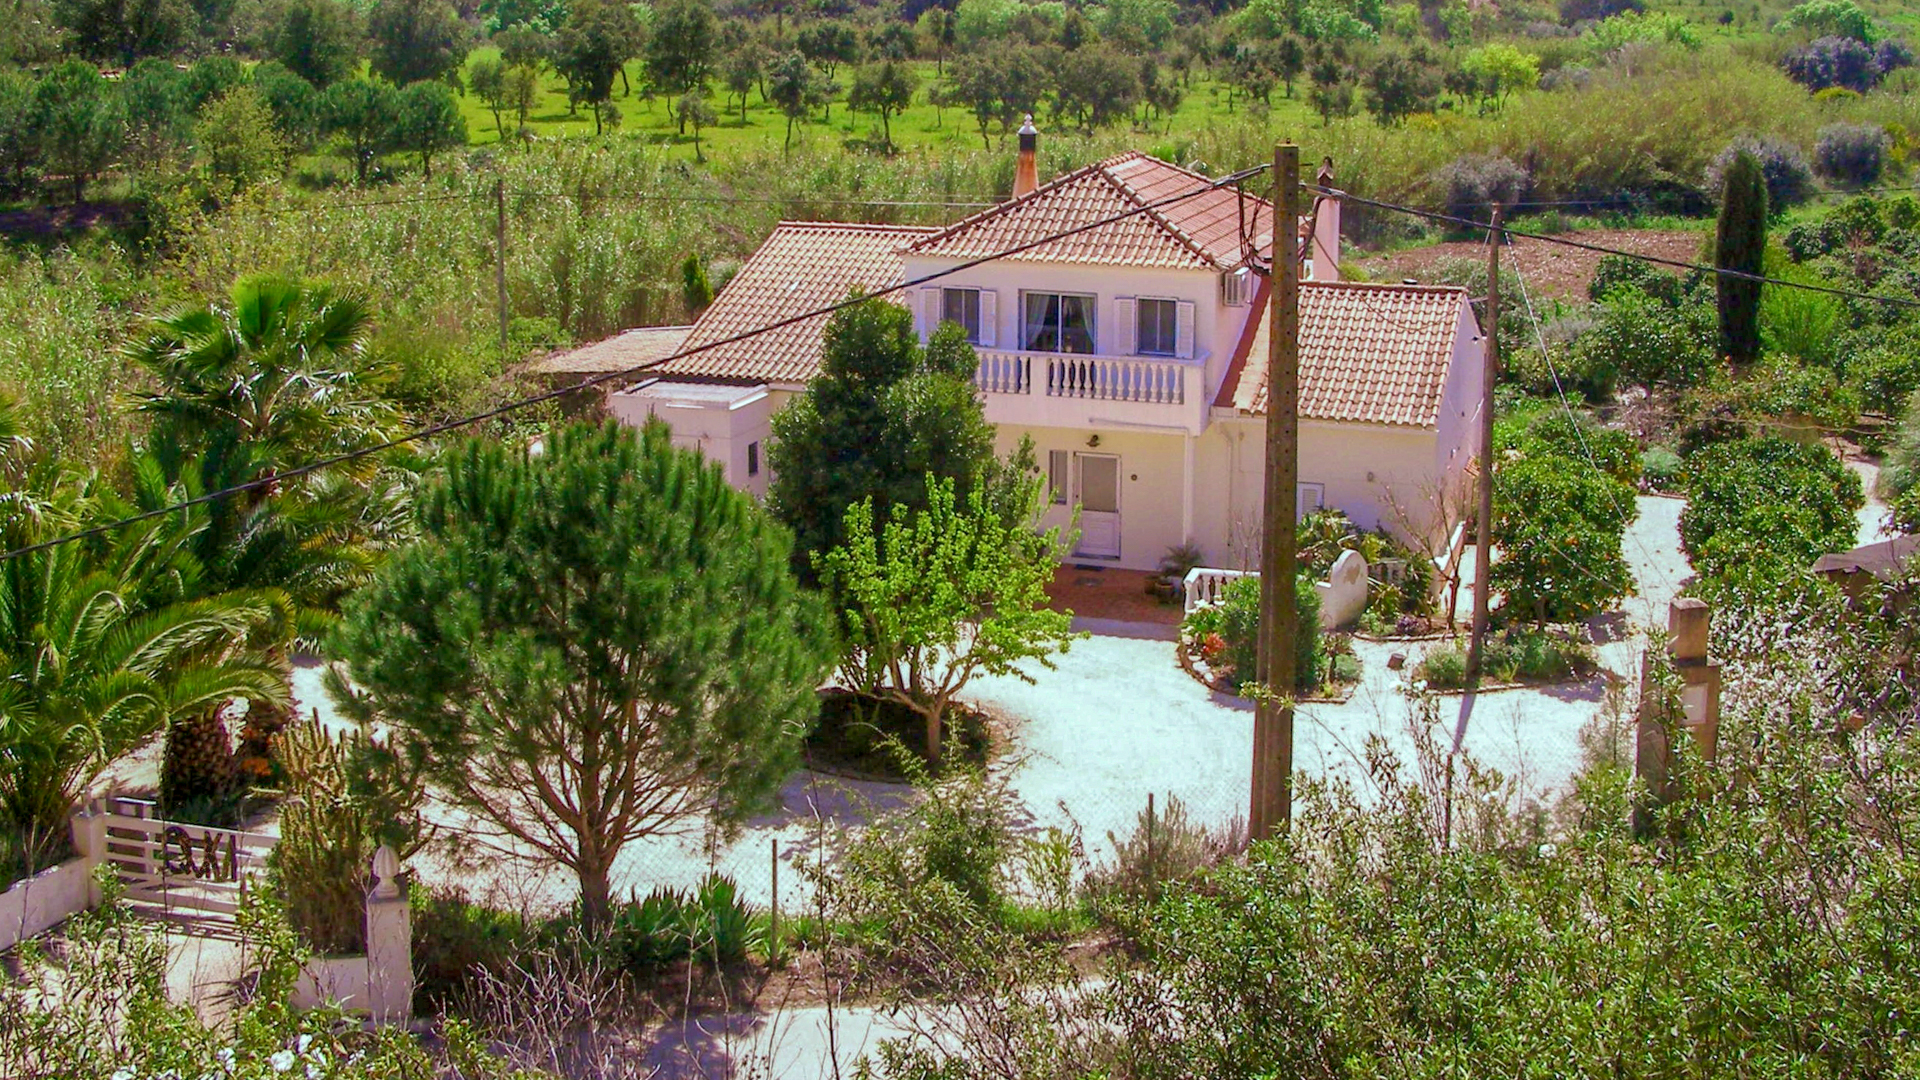 3-bedroom Villa with land, ruin, fruit trees, lake and lovely views, São Bartolomeu Messines | VM873